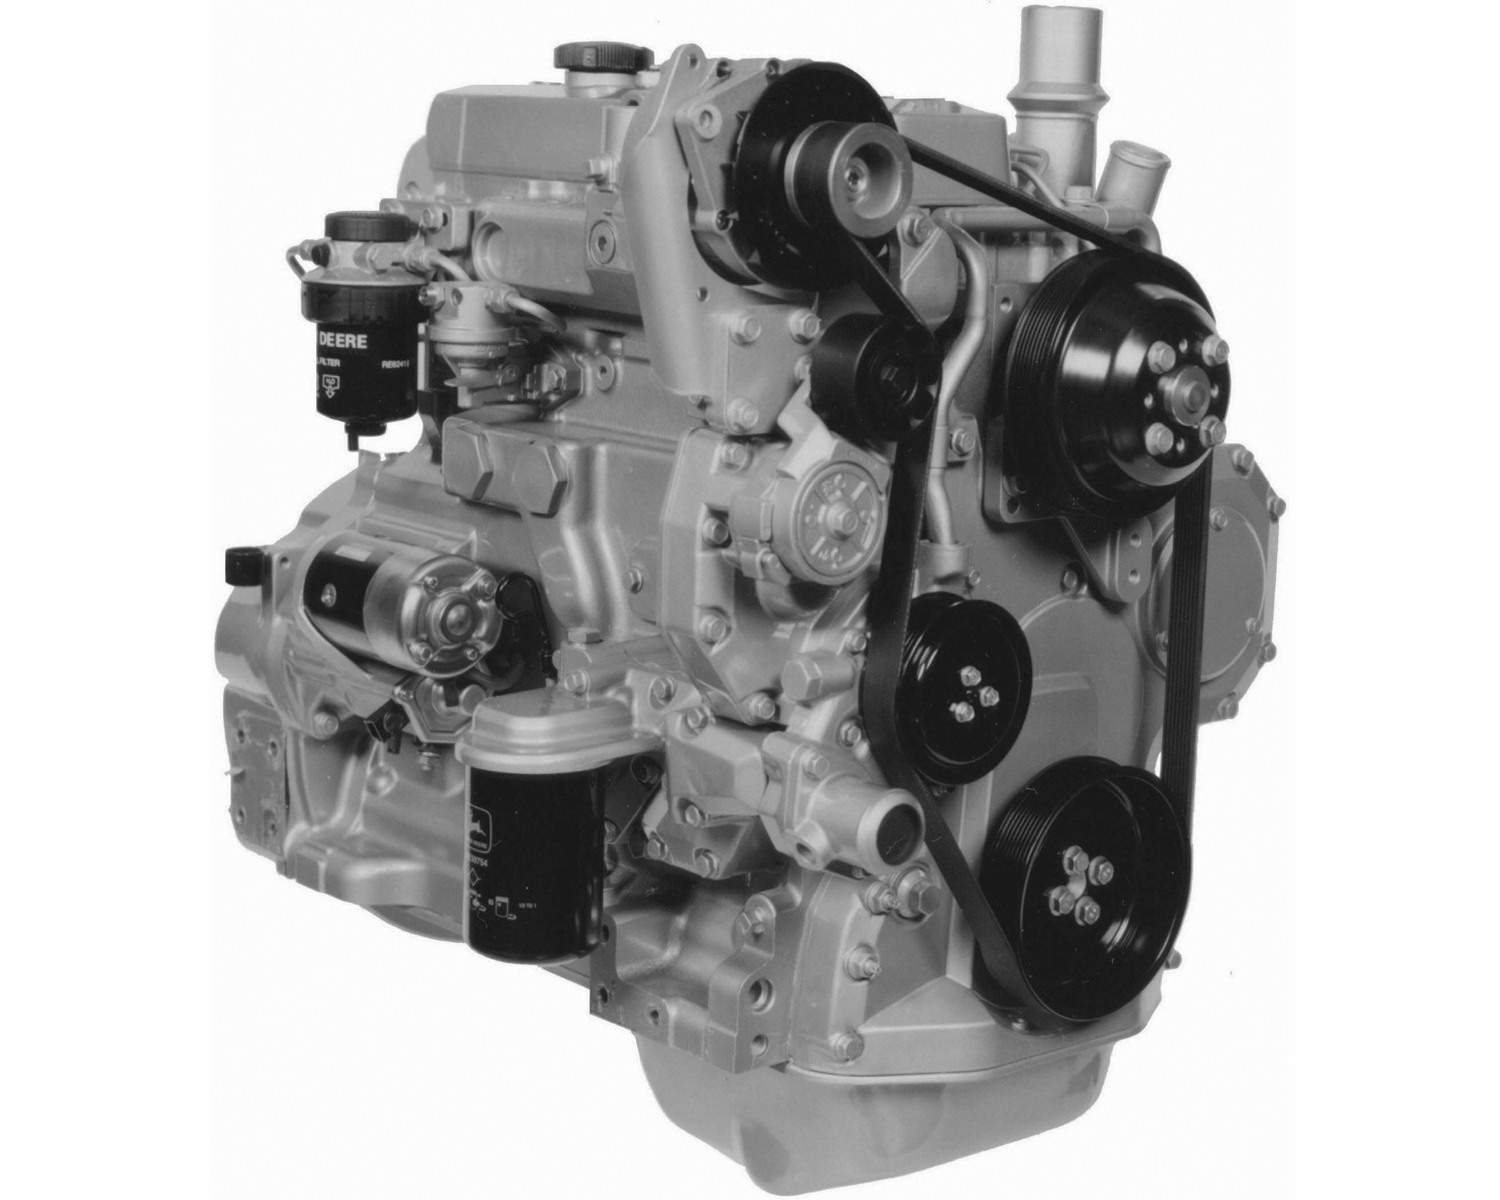 John Deere Engines : John deere remanufactured df engine melton industries